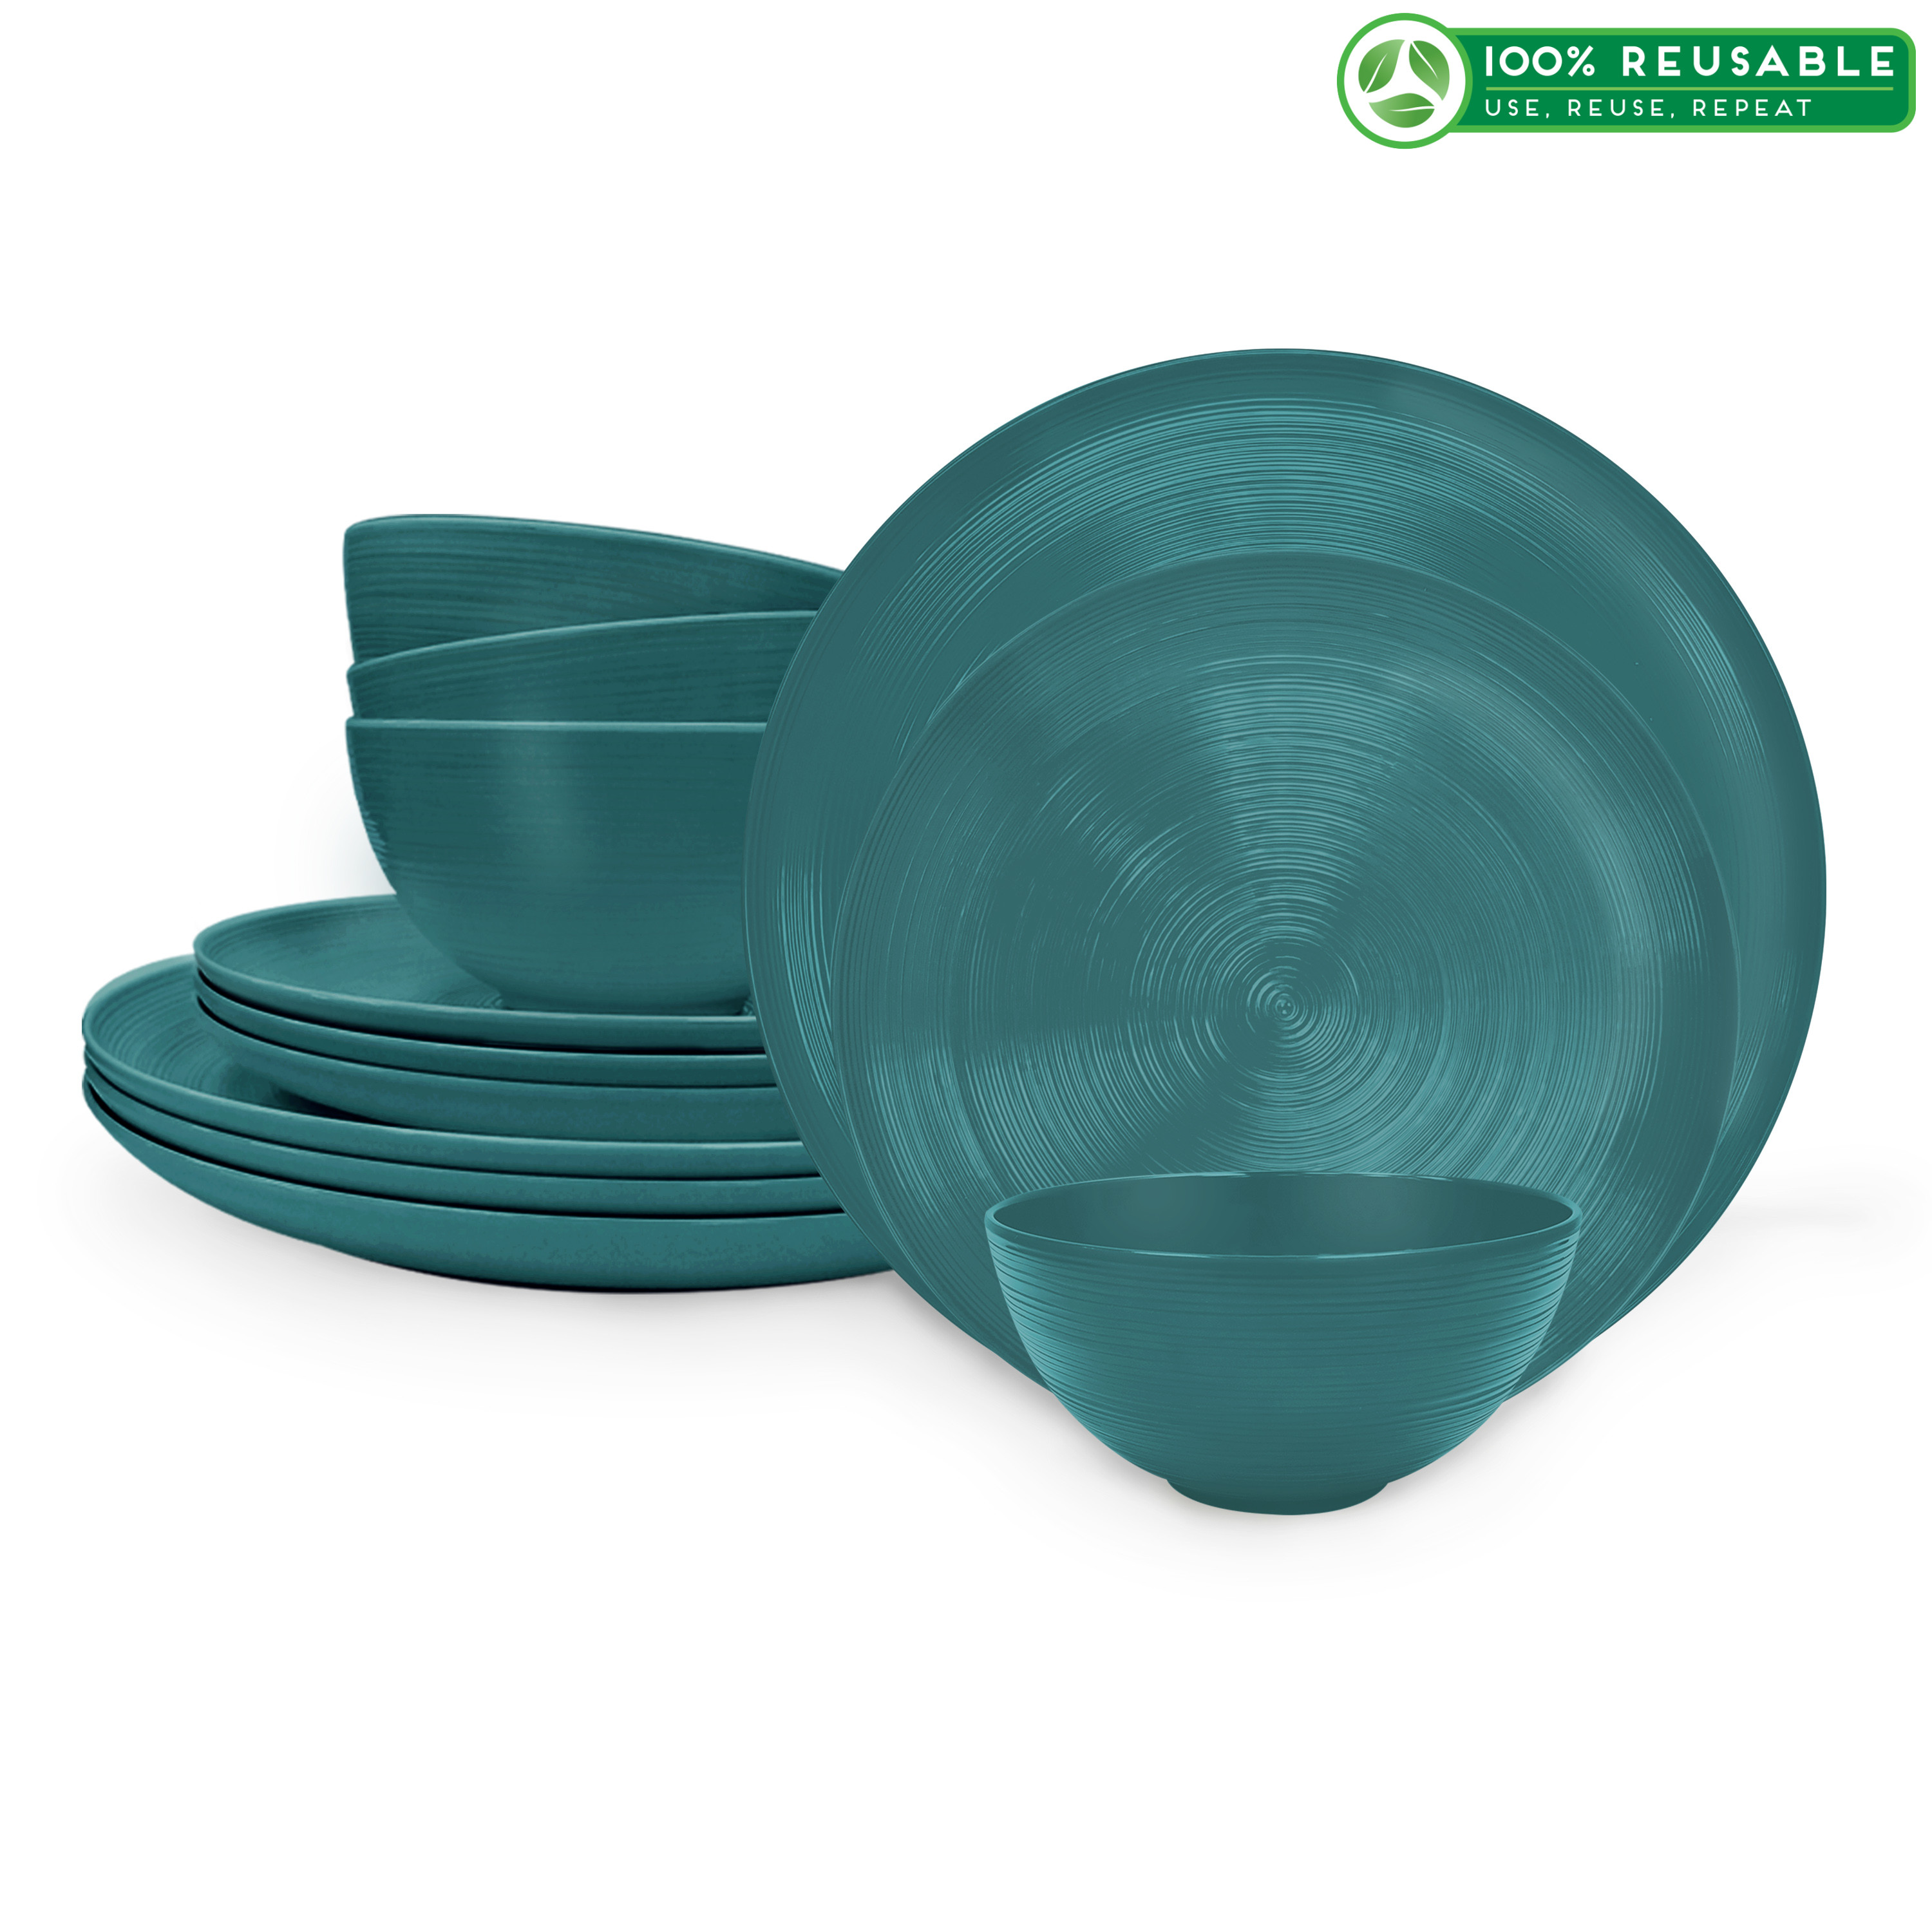 American Conventional Plate & Bowl Sets, Marine, 12-piece set slideshow image 1